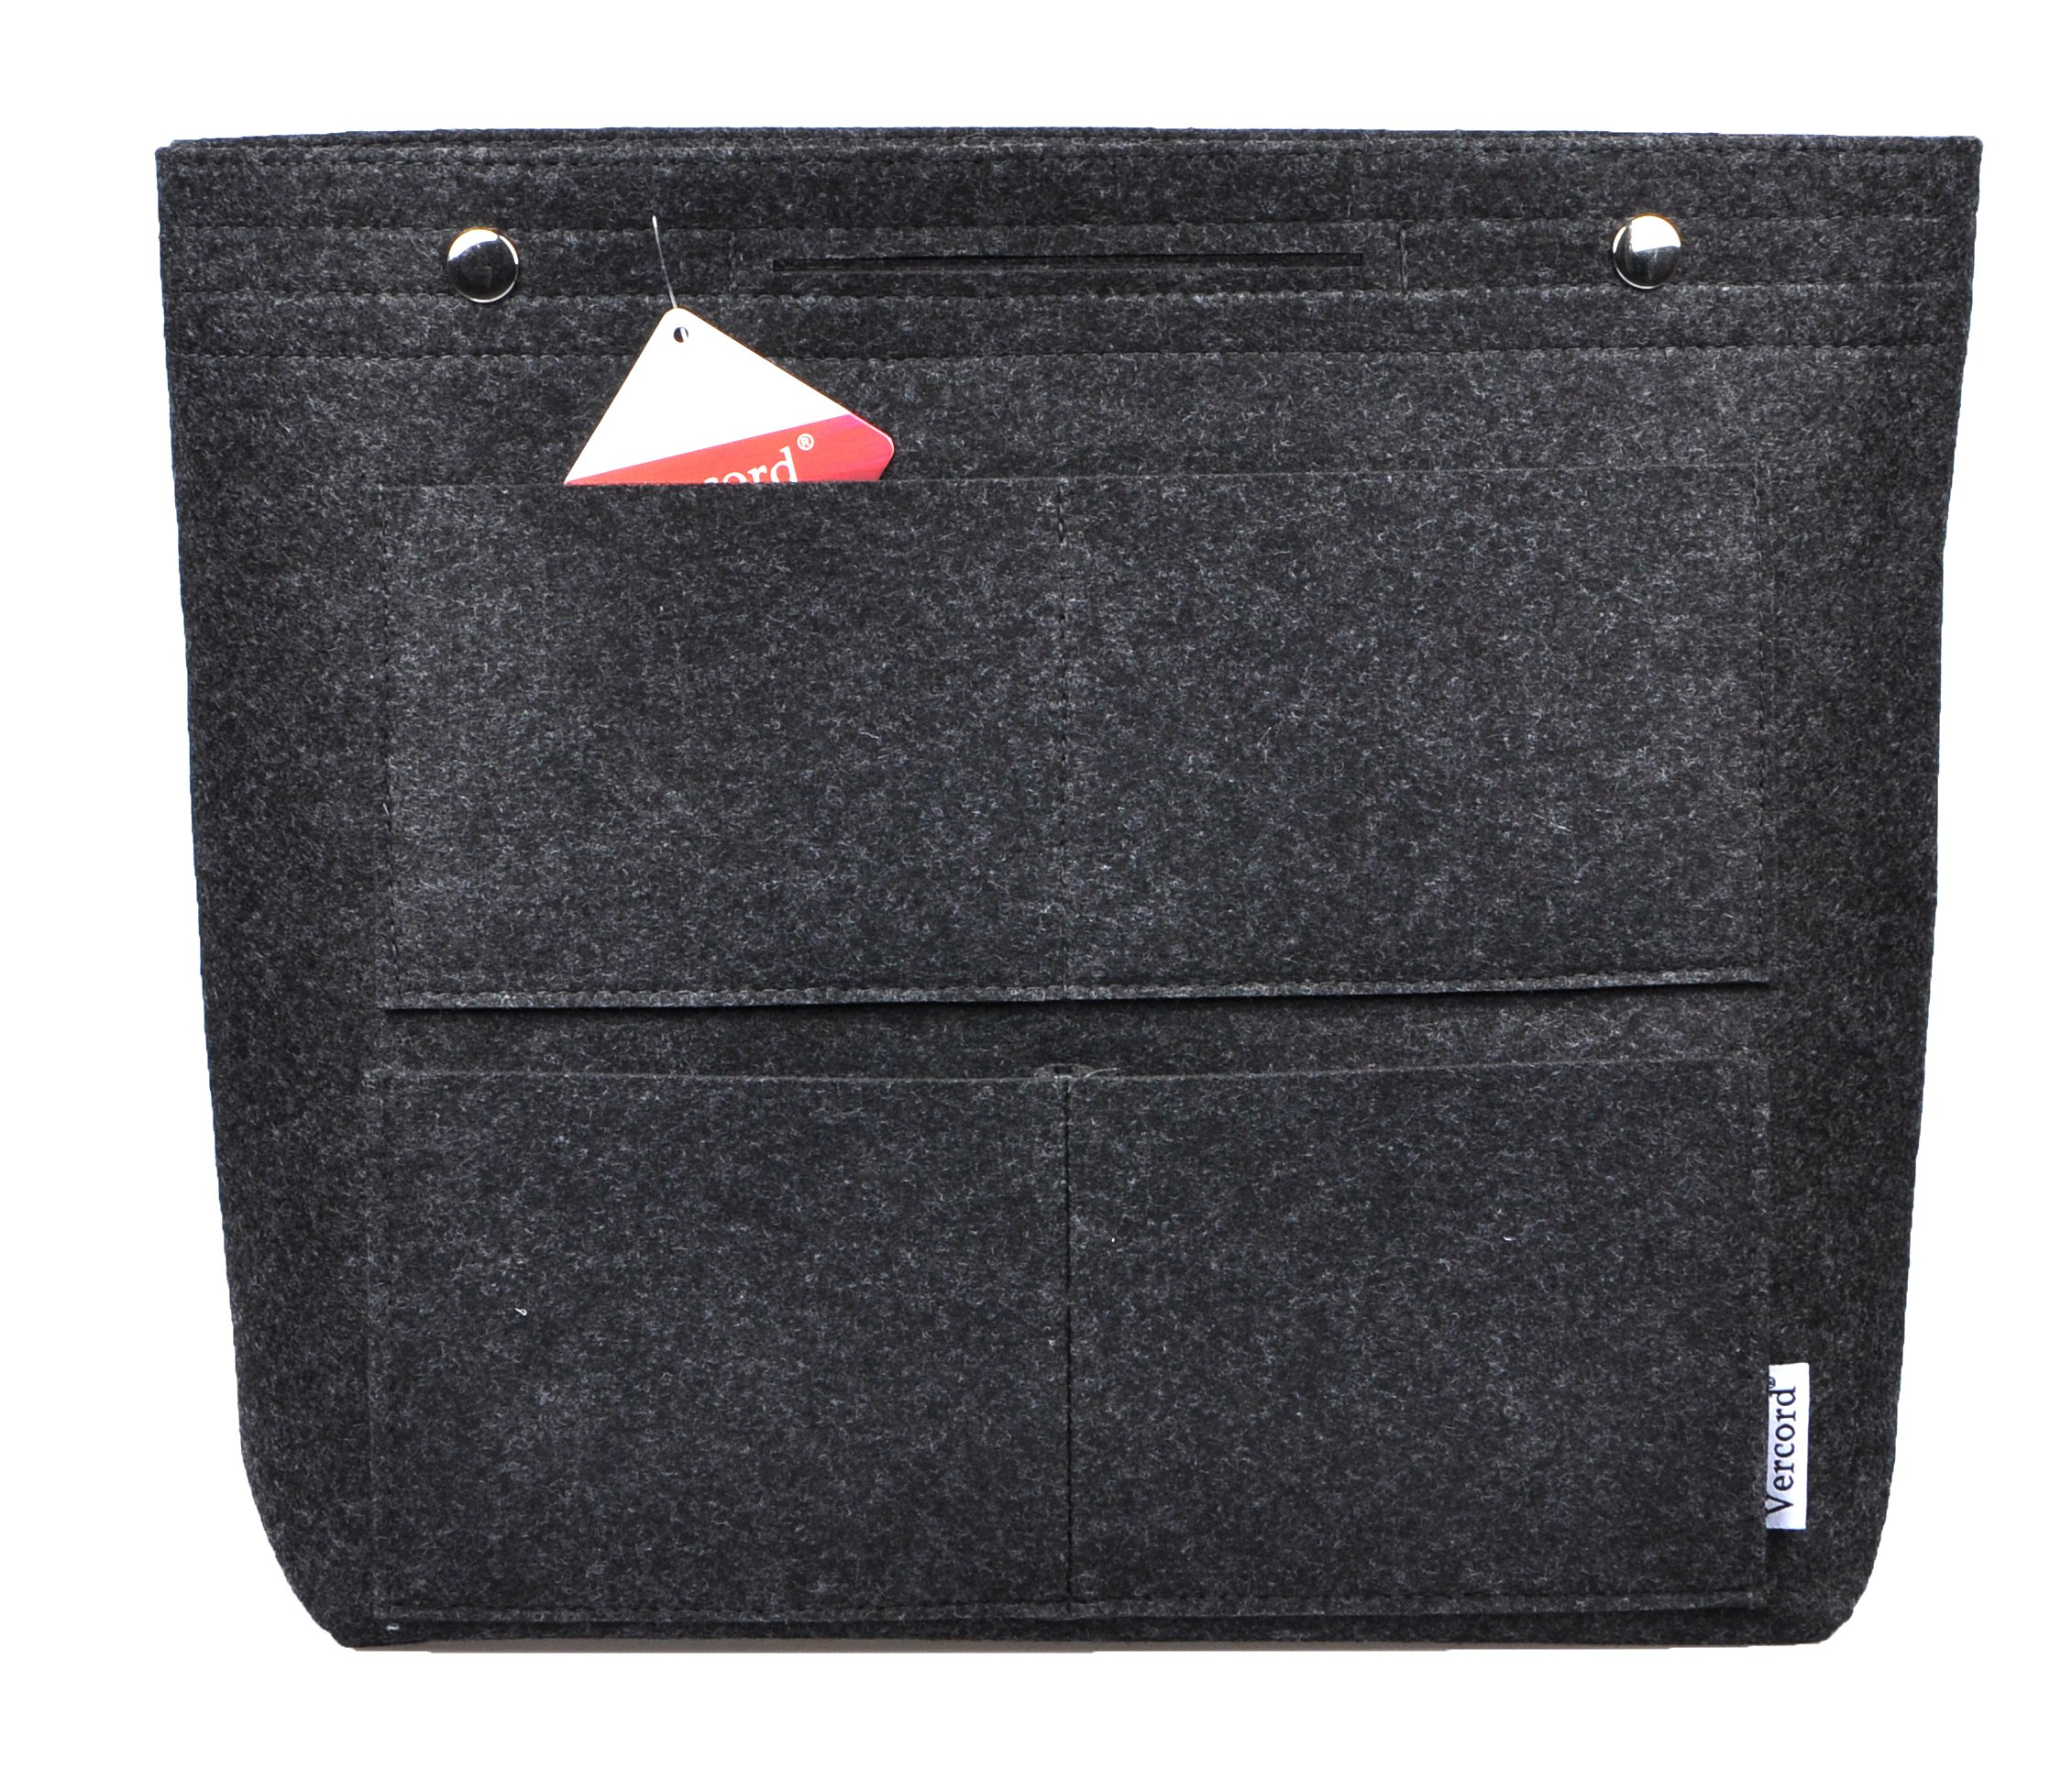 Vercord Long Large Felt Handbag Tote Purse Organizer Insert Liner Multi-Pocket, Dark Grey by Vercord